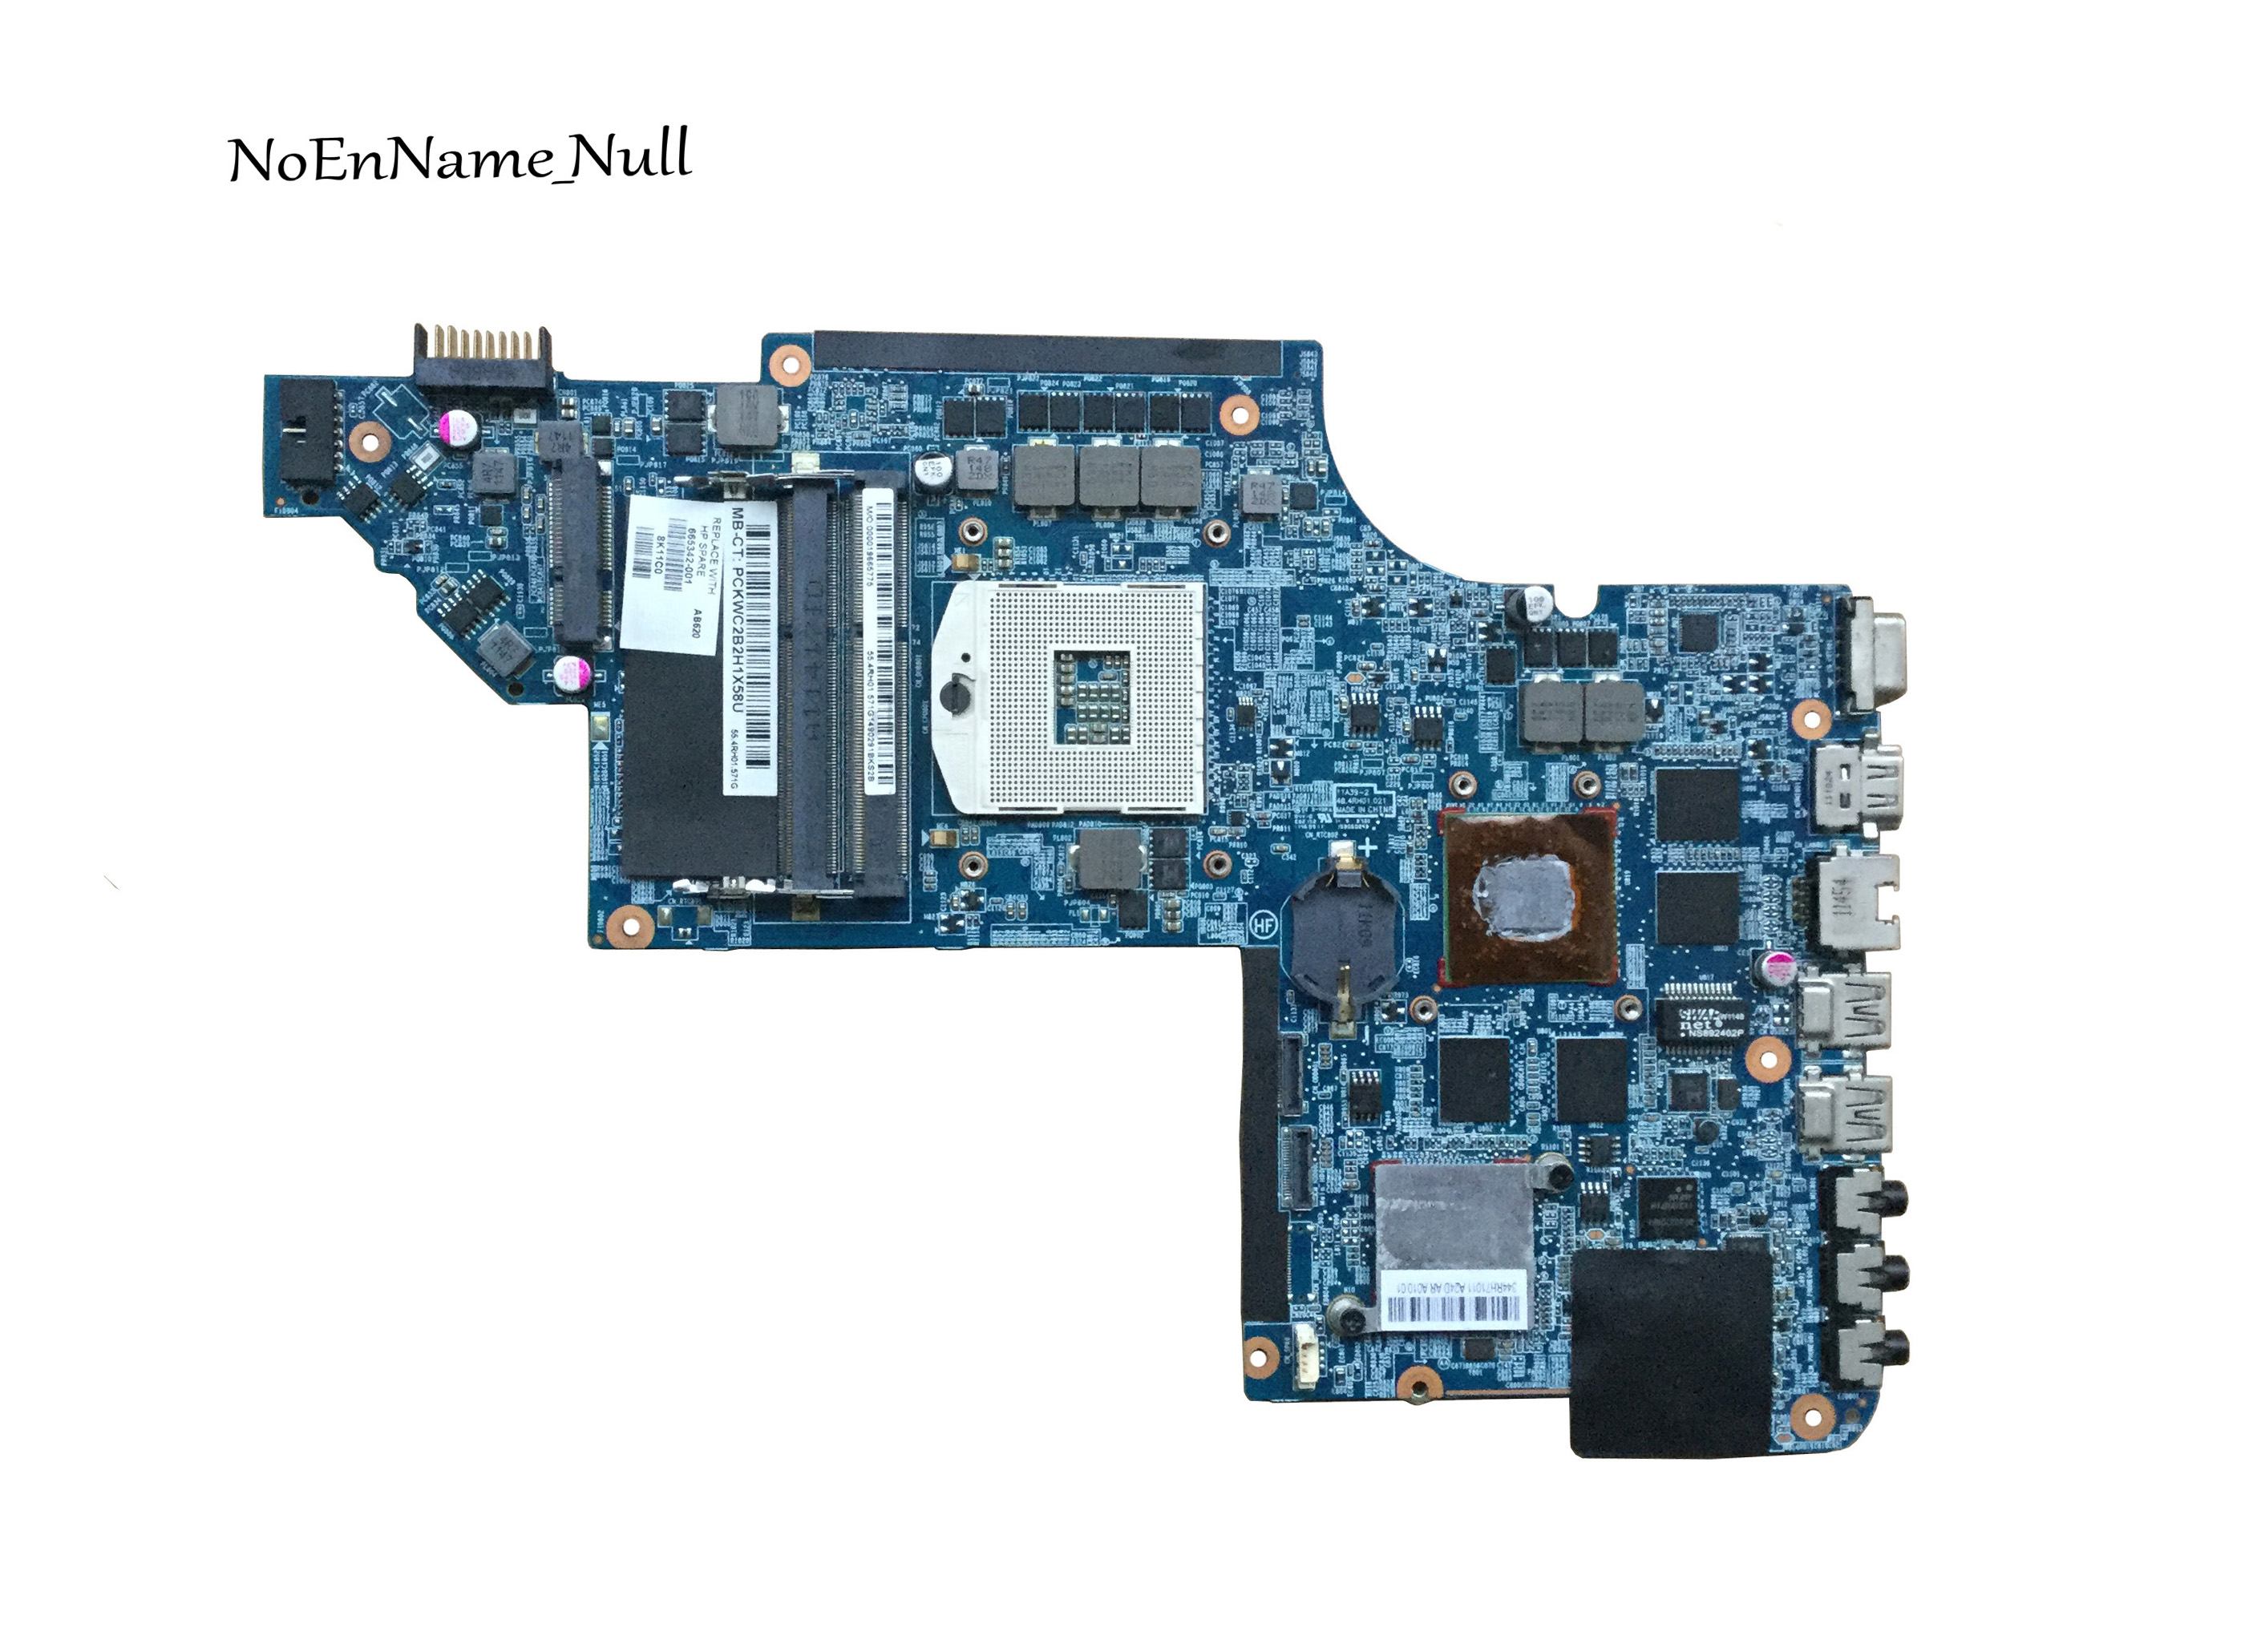 665342-001 Free Shipping Laptop Motherboard For HP Pavilion DV6T DV6-6000 Motherboard HD6770 2GB Notebook PC Tested OK